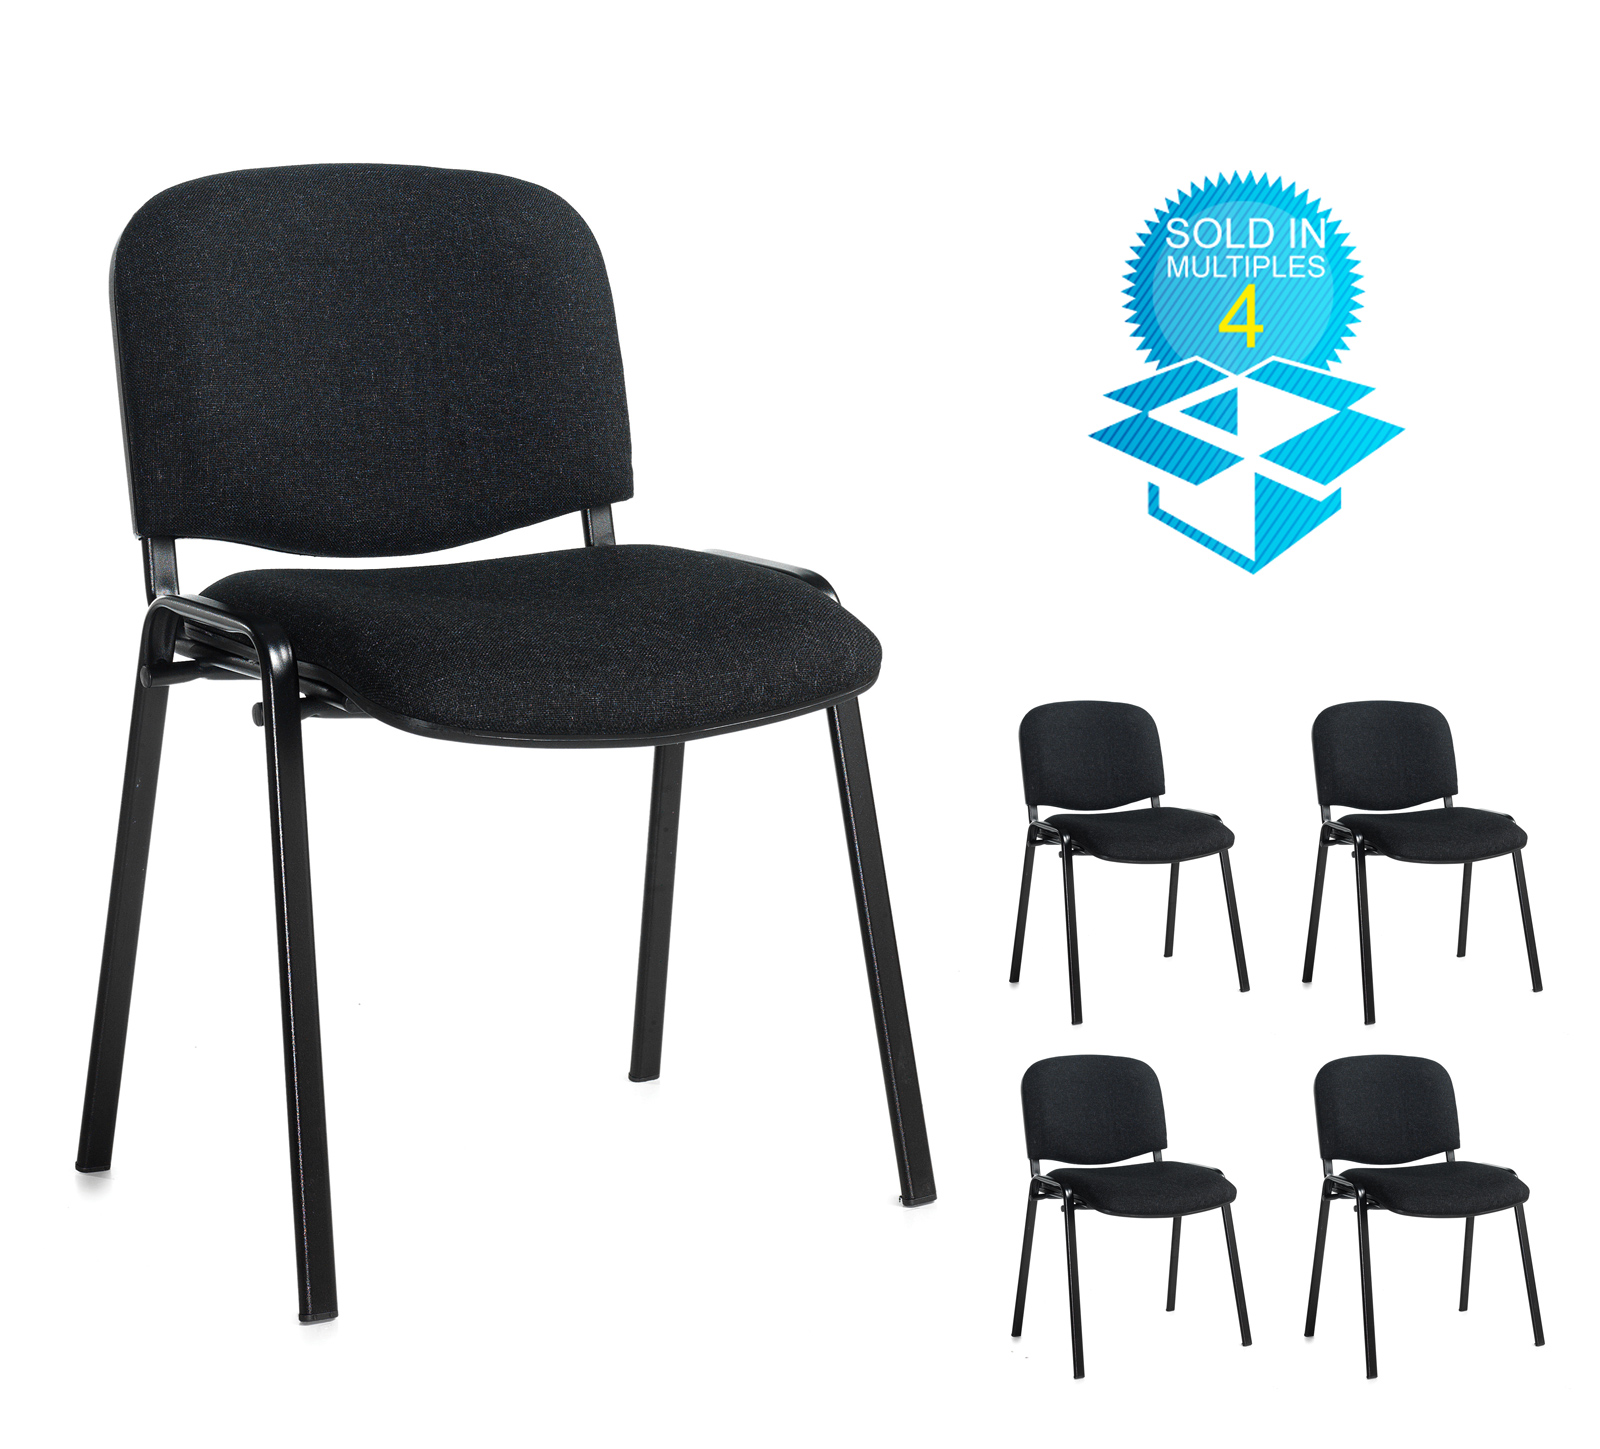 Taurus meeting room stackable chair (box of 4) with black frame and no arms - charcoal